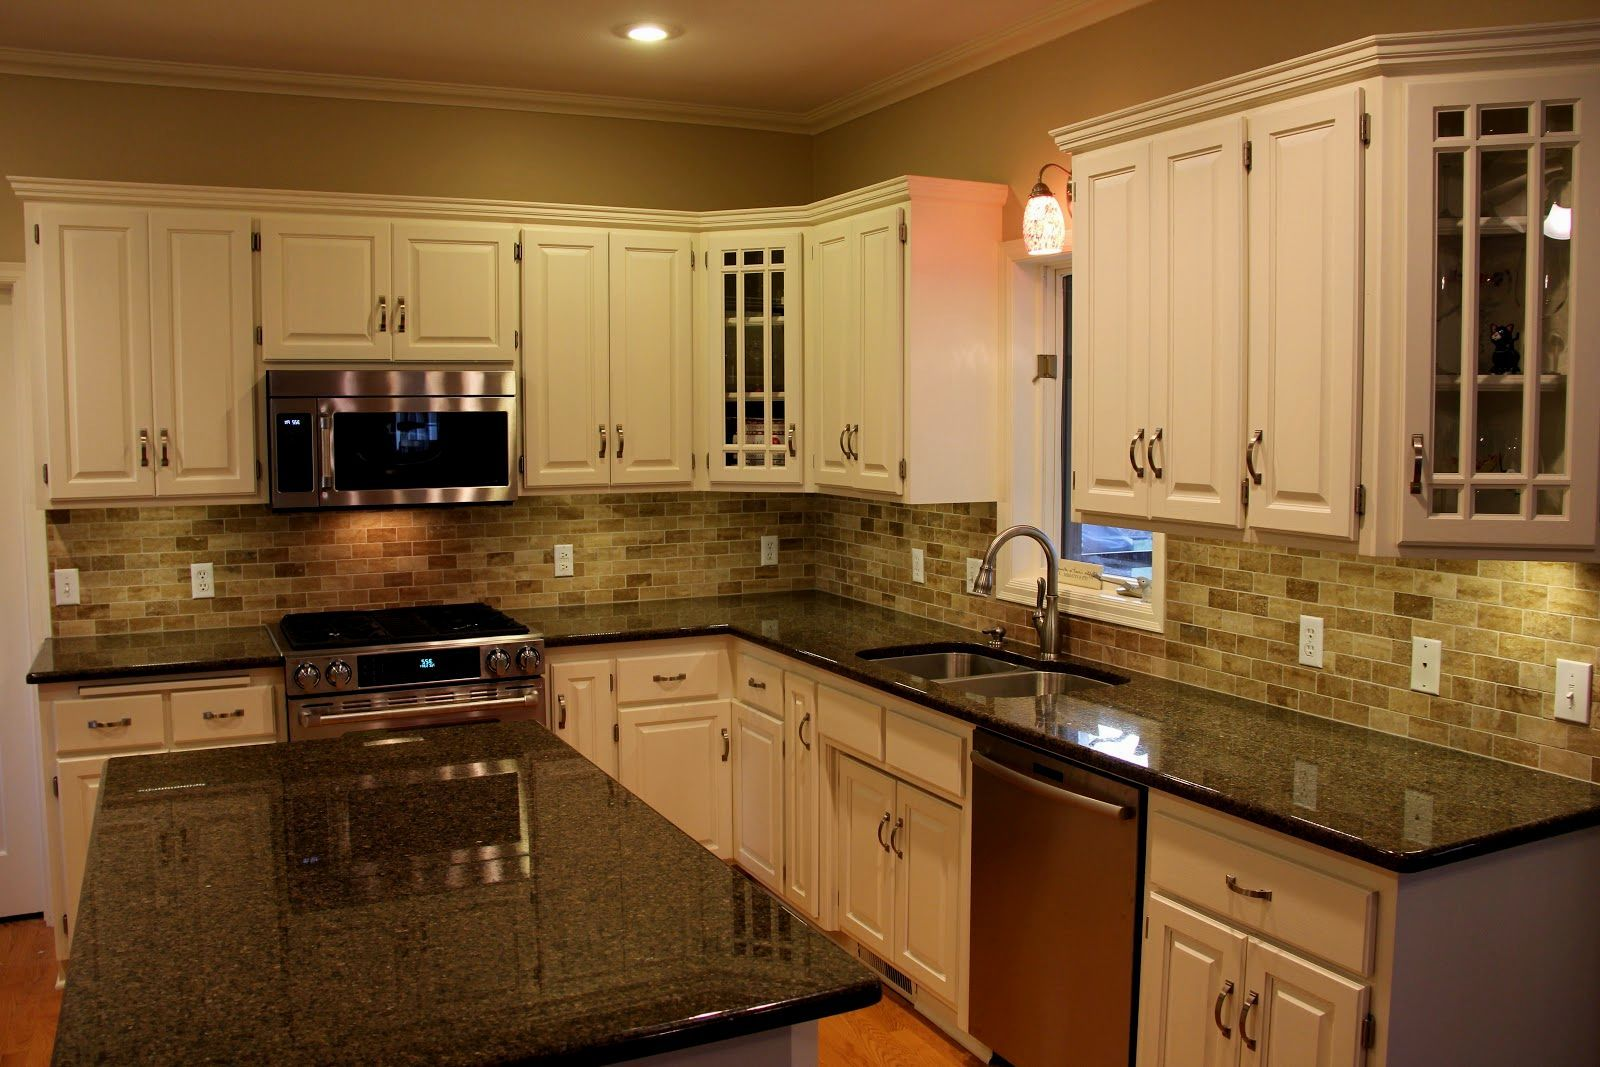 White Kitchen Cabinets With Green Granite Counters ... | Kitchen counter decor, Backsplash for ...